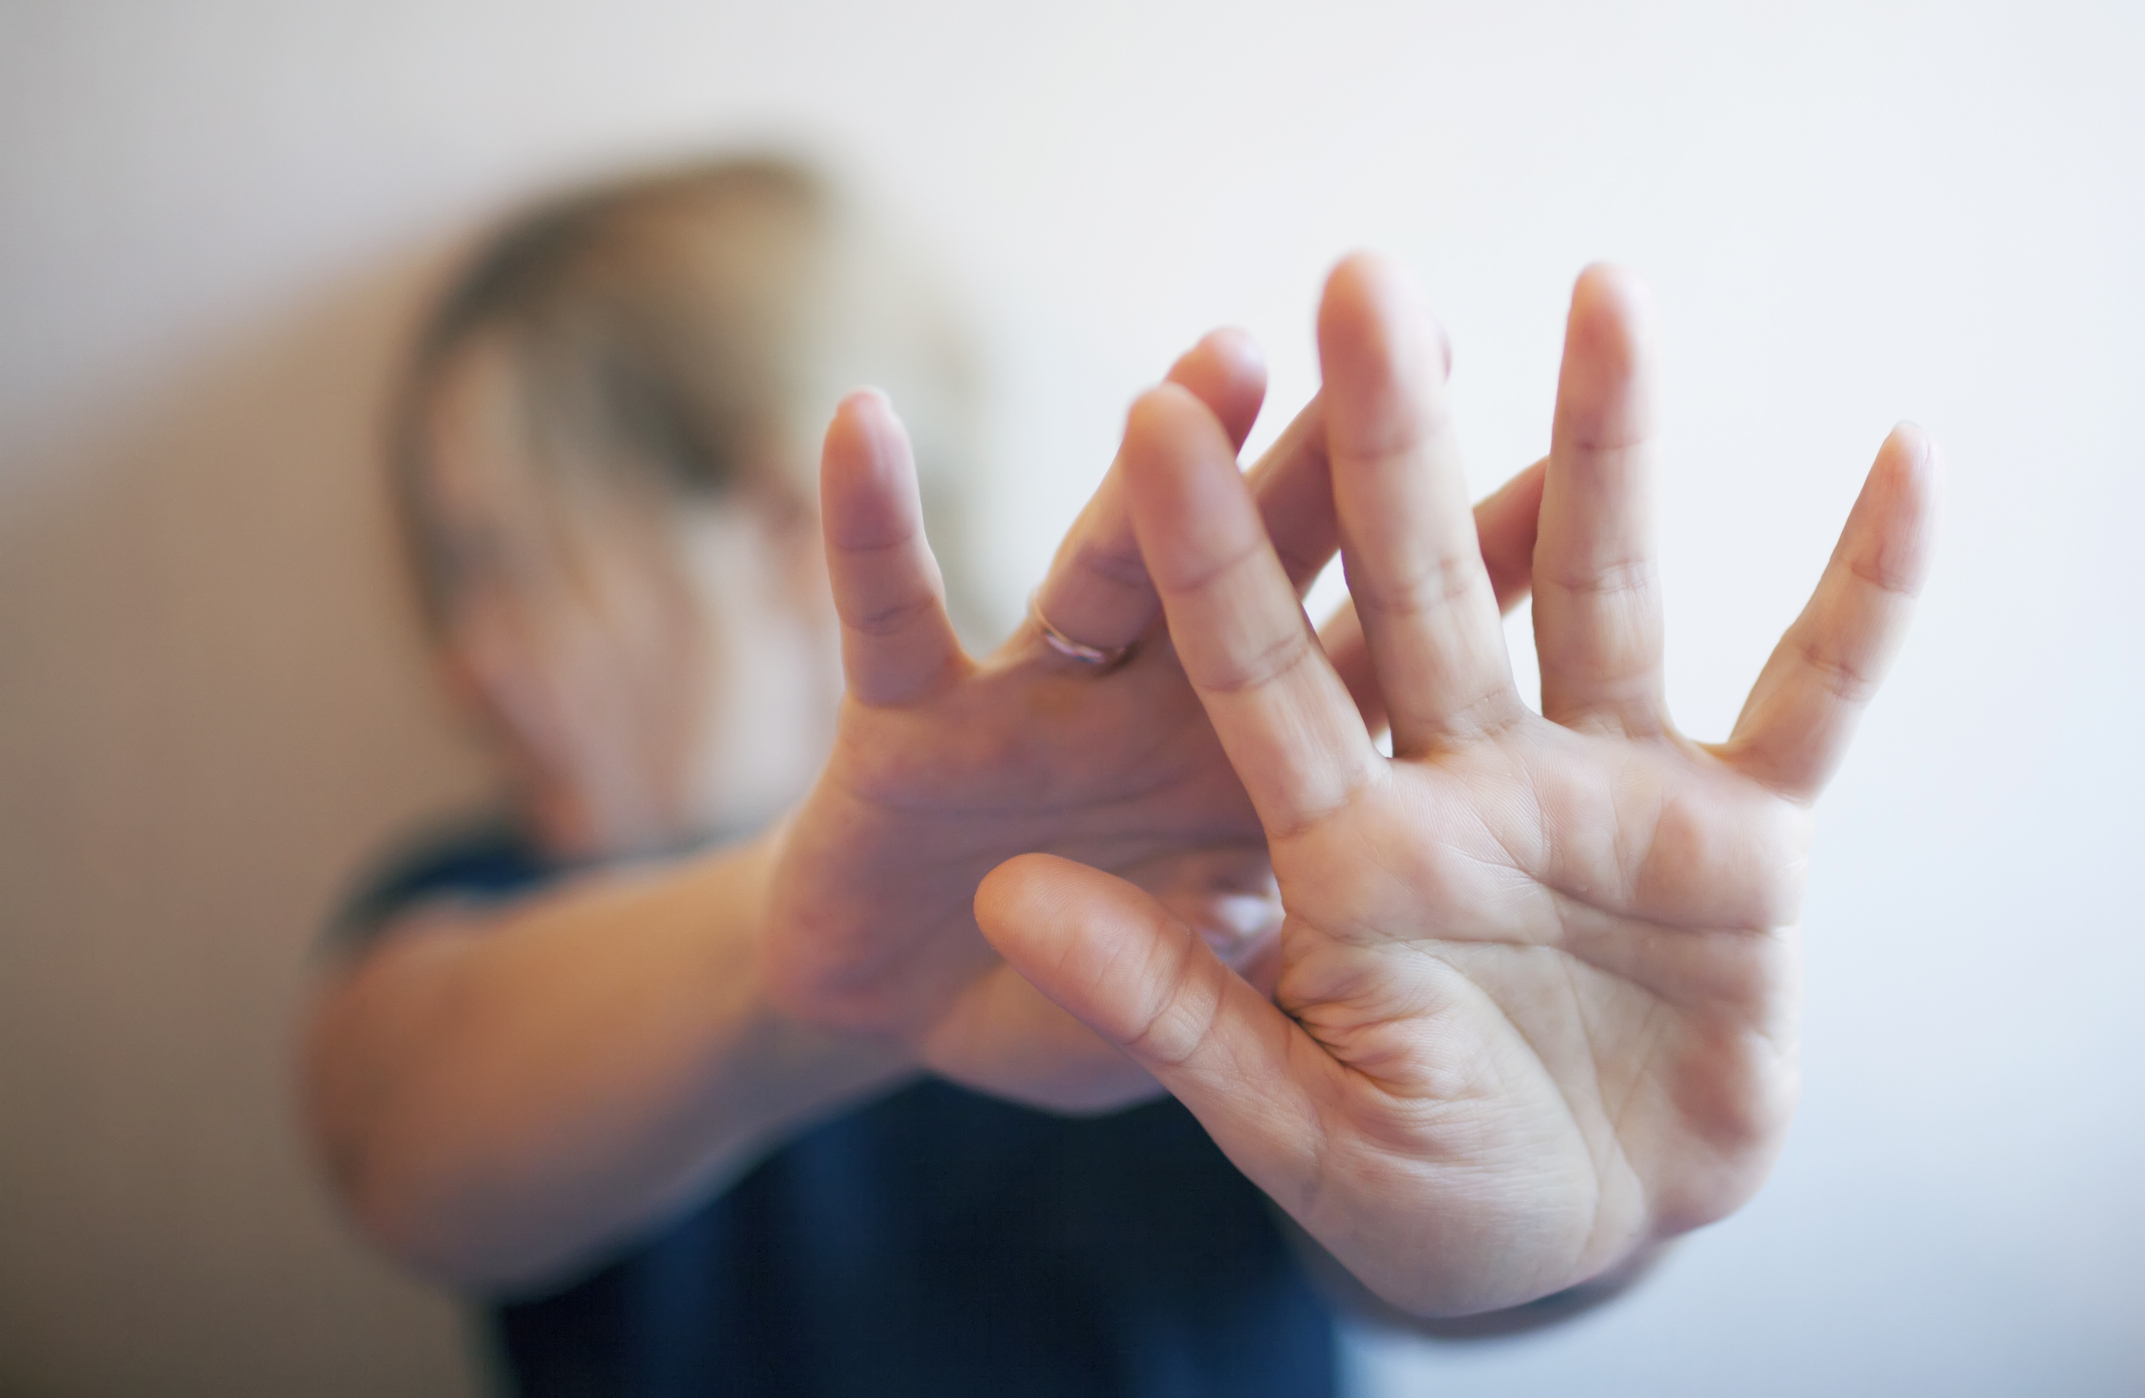 Women who survive domestic abuse more likely to develop heart disease, diabetes, die of any cause